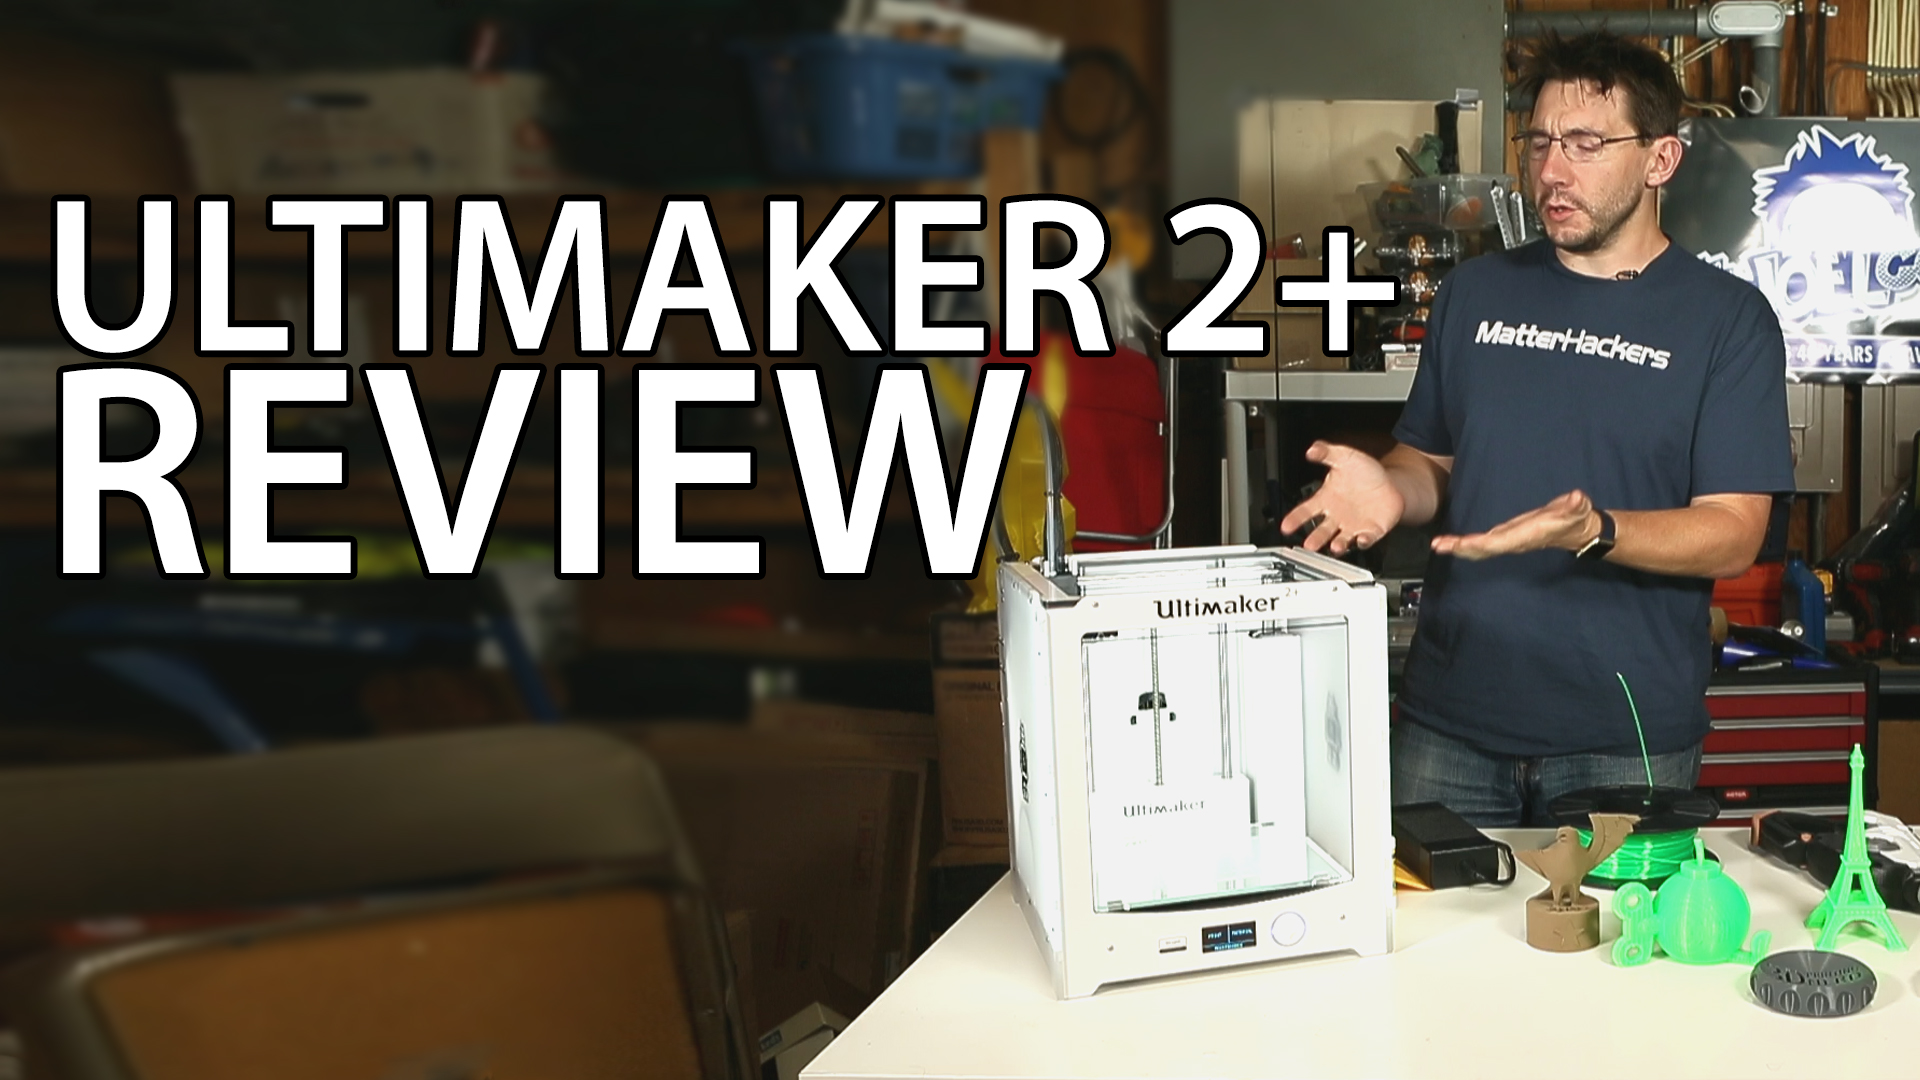 Ultimaker 2+ Review